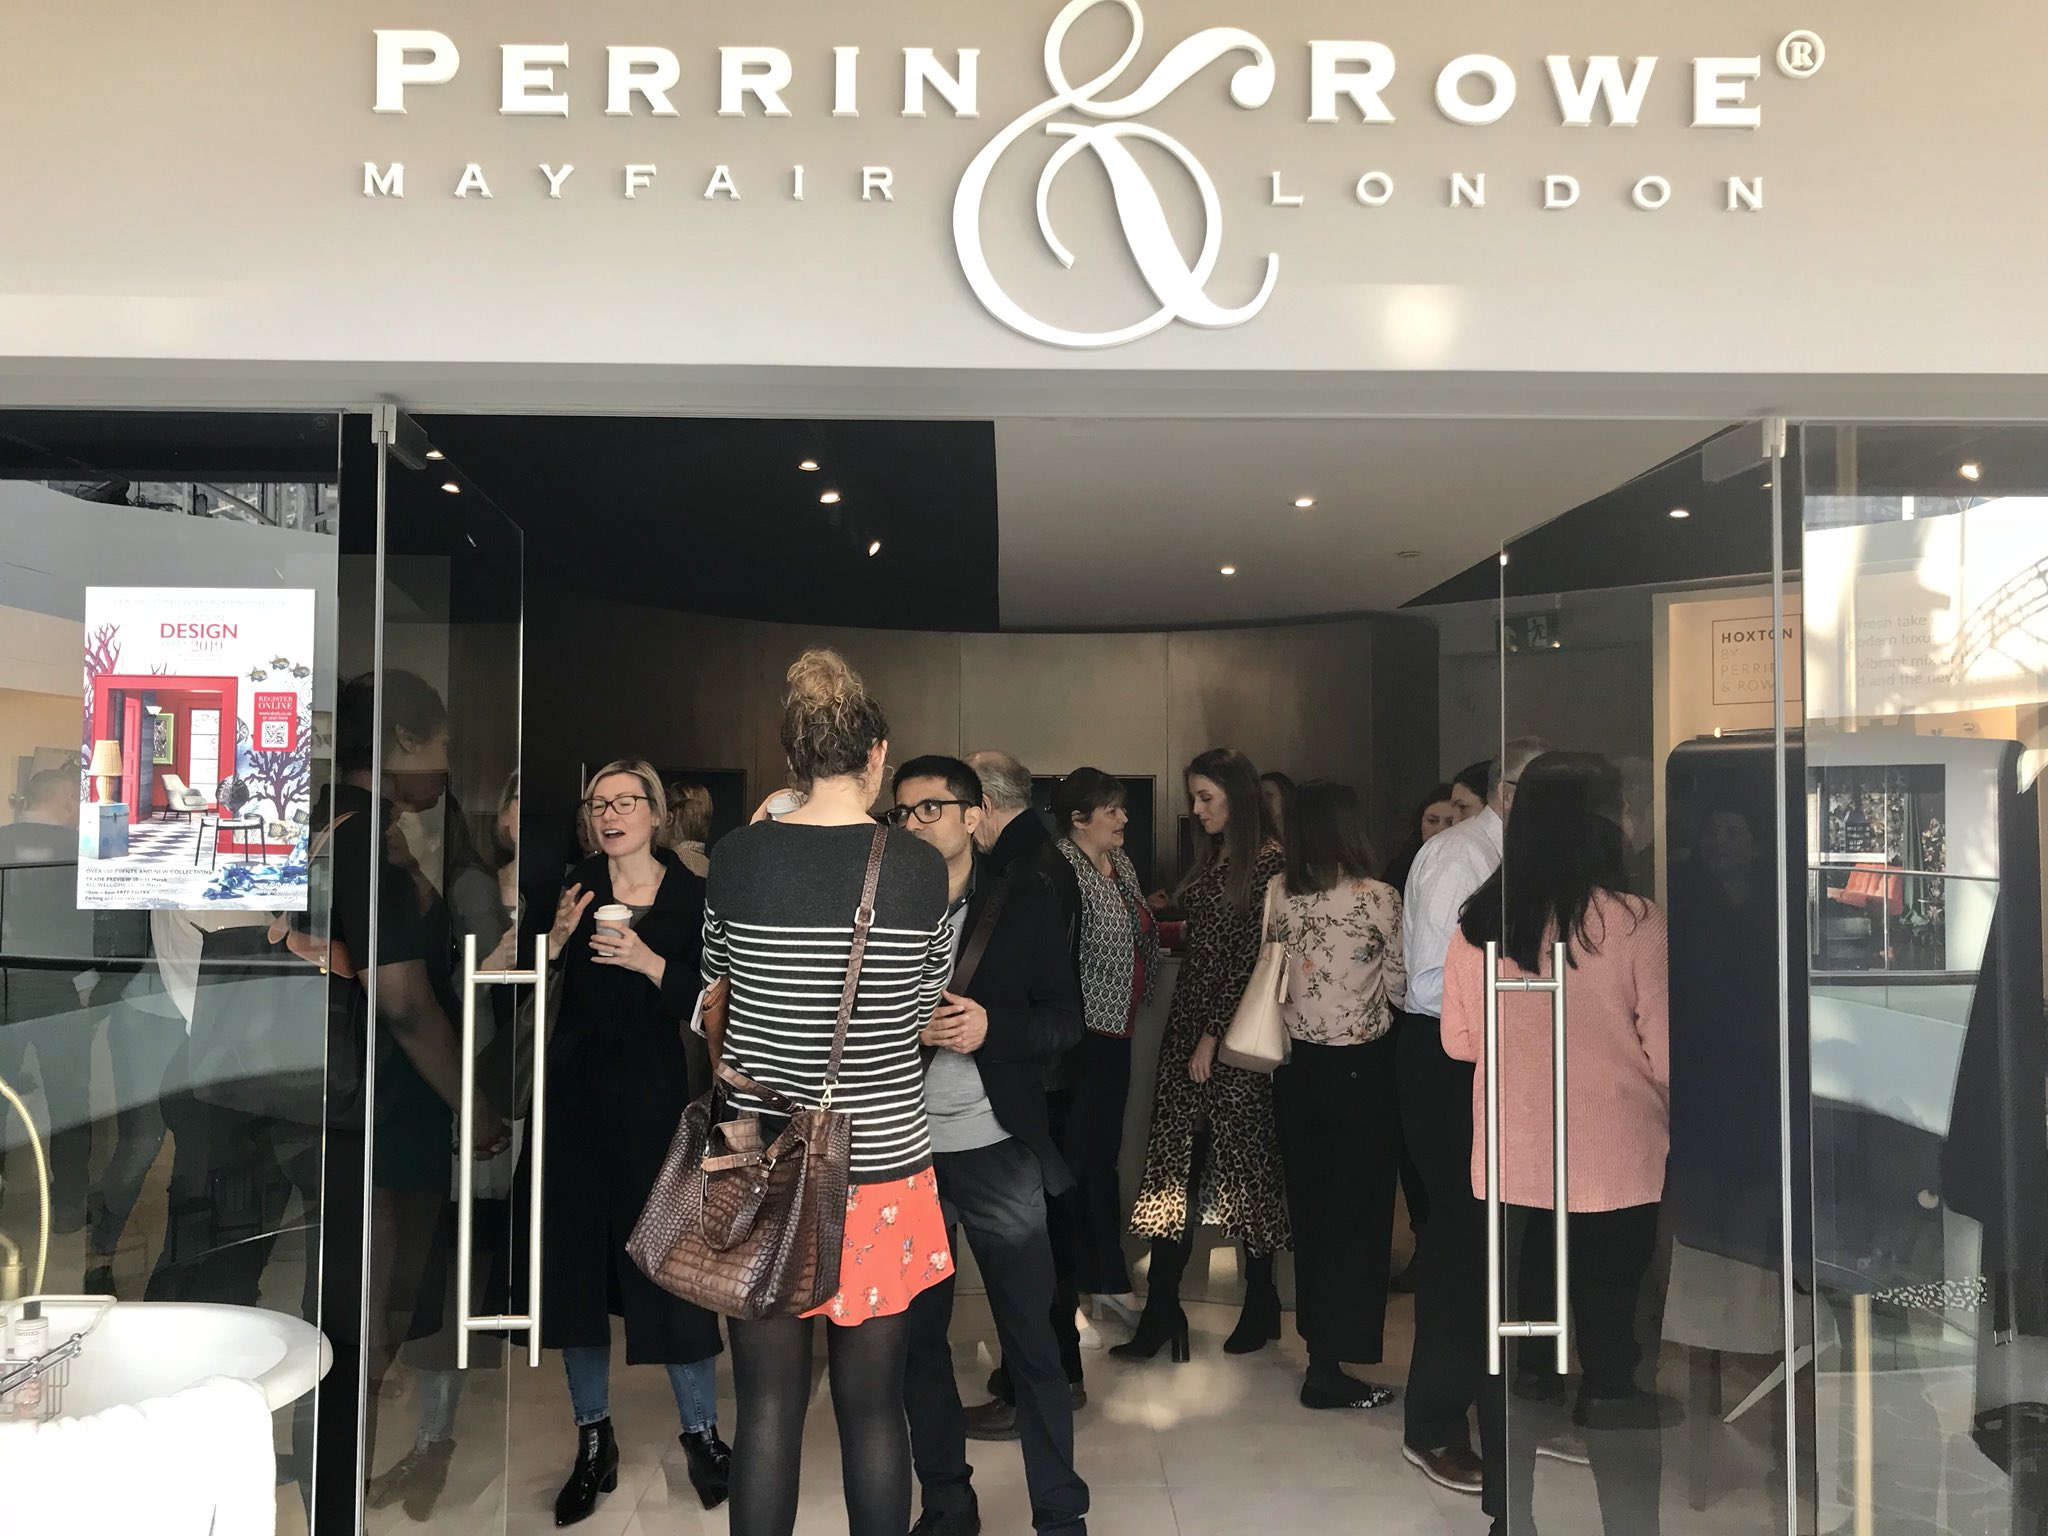 Design Centre Chelsea Harbour On Twitter H A P P Y B I R T H D A Y Perrinandrowe Celebrating Their 1 Year Anniversary Here With A Delicious Breakfast And Full House Happybirthday Perrinandrowe Breakfast Anniversary Bathrooms